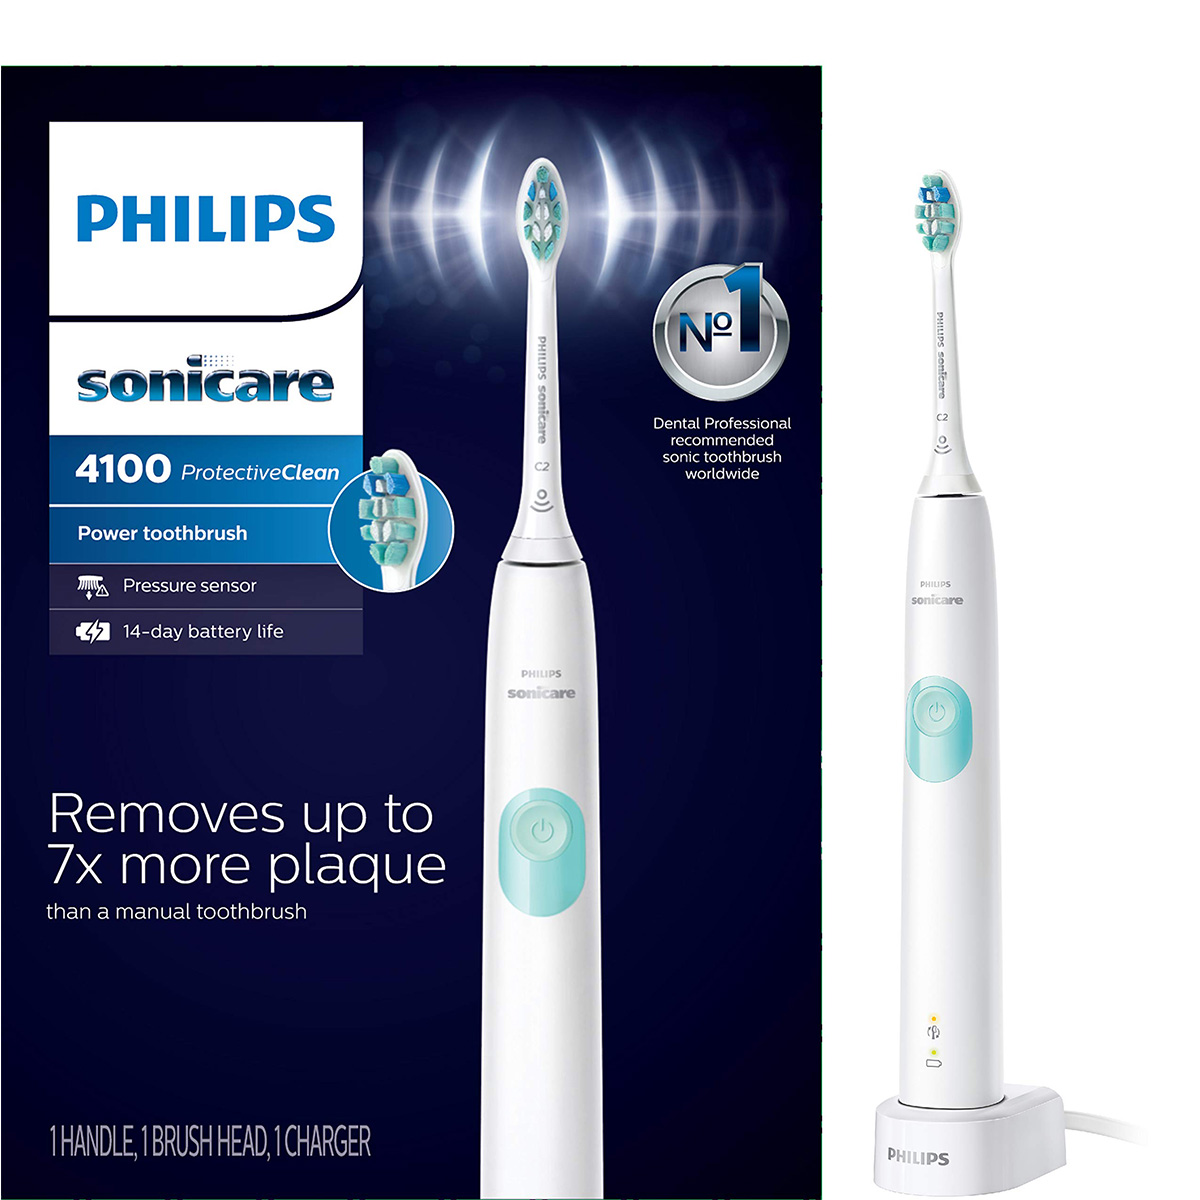 ban-chai-danh-rang-dien-philips-sonicare-protective-clean-4100